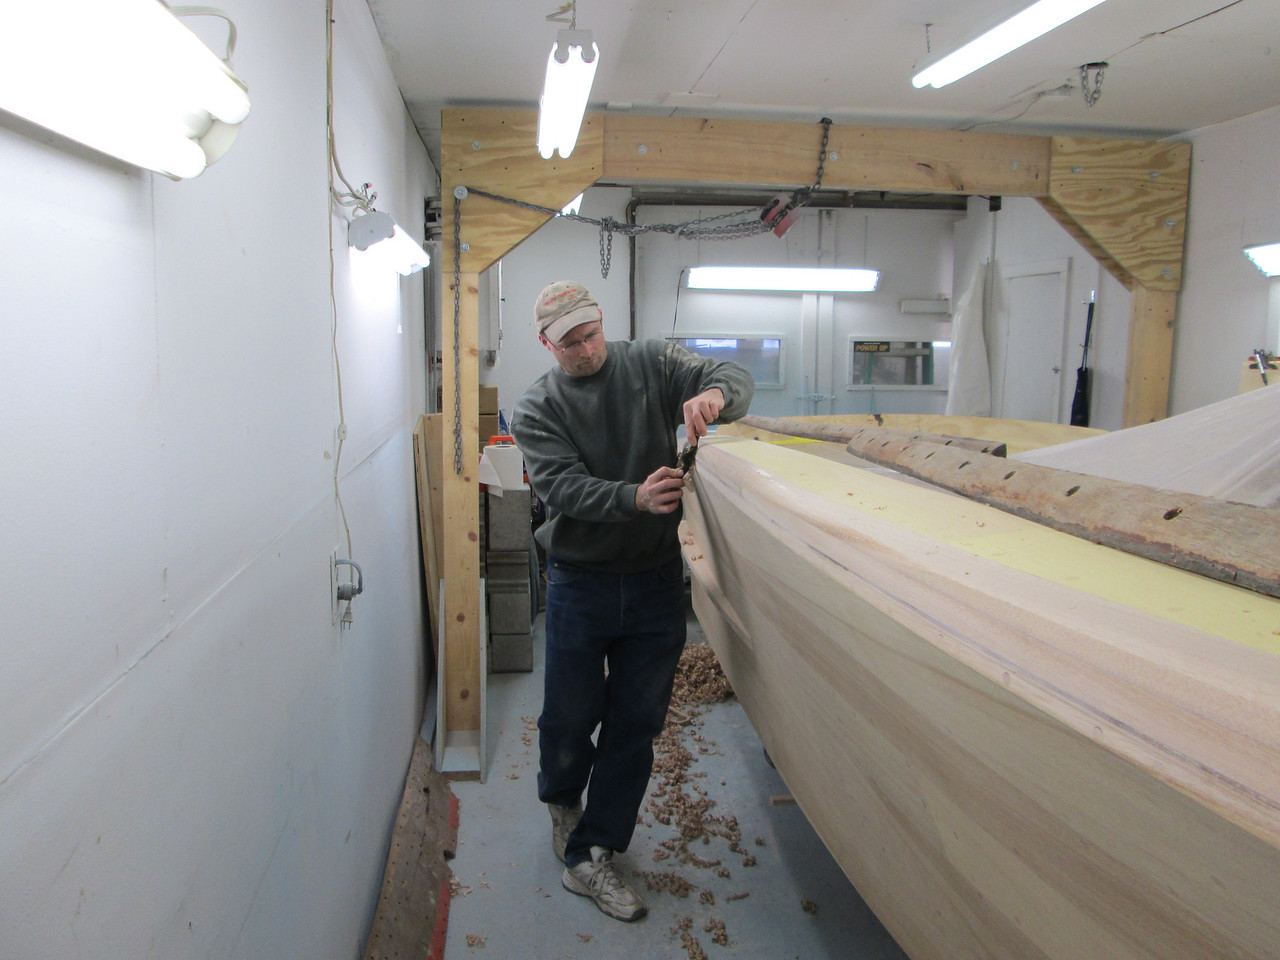 Shaping the cover board starboard side.